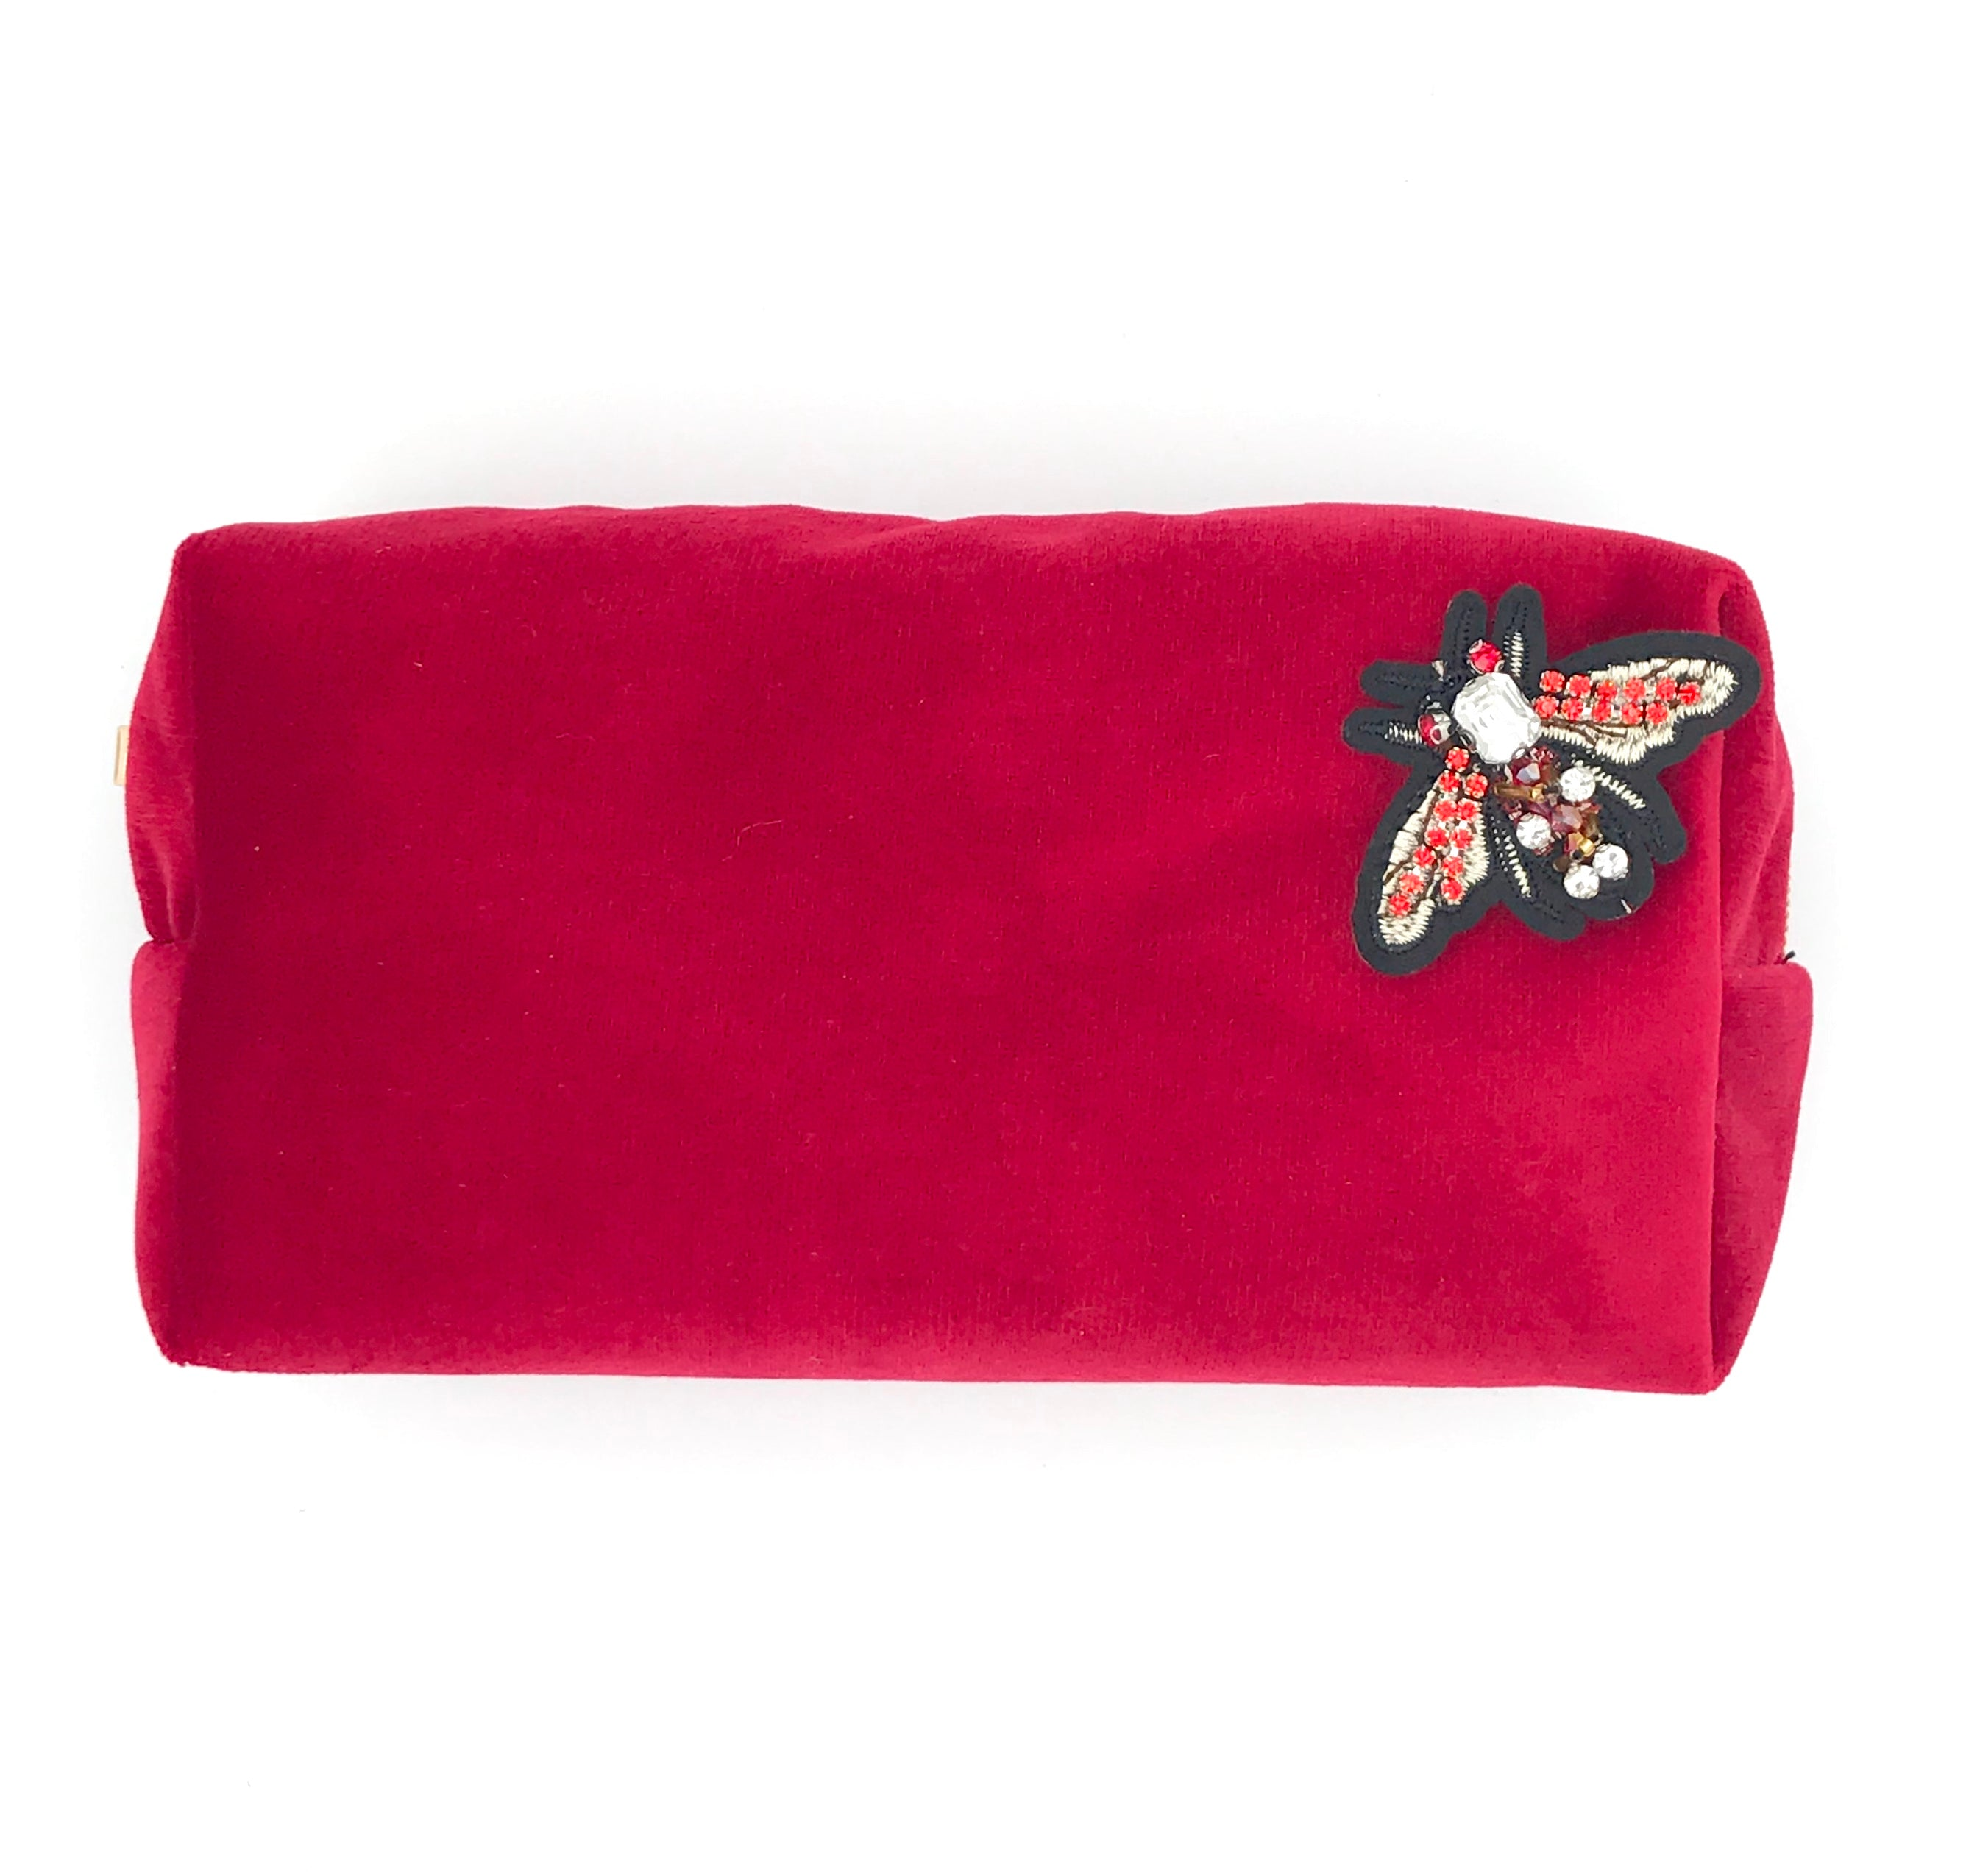 Velvet make-up bag in berry with a red jewel pin